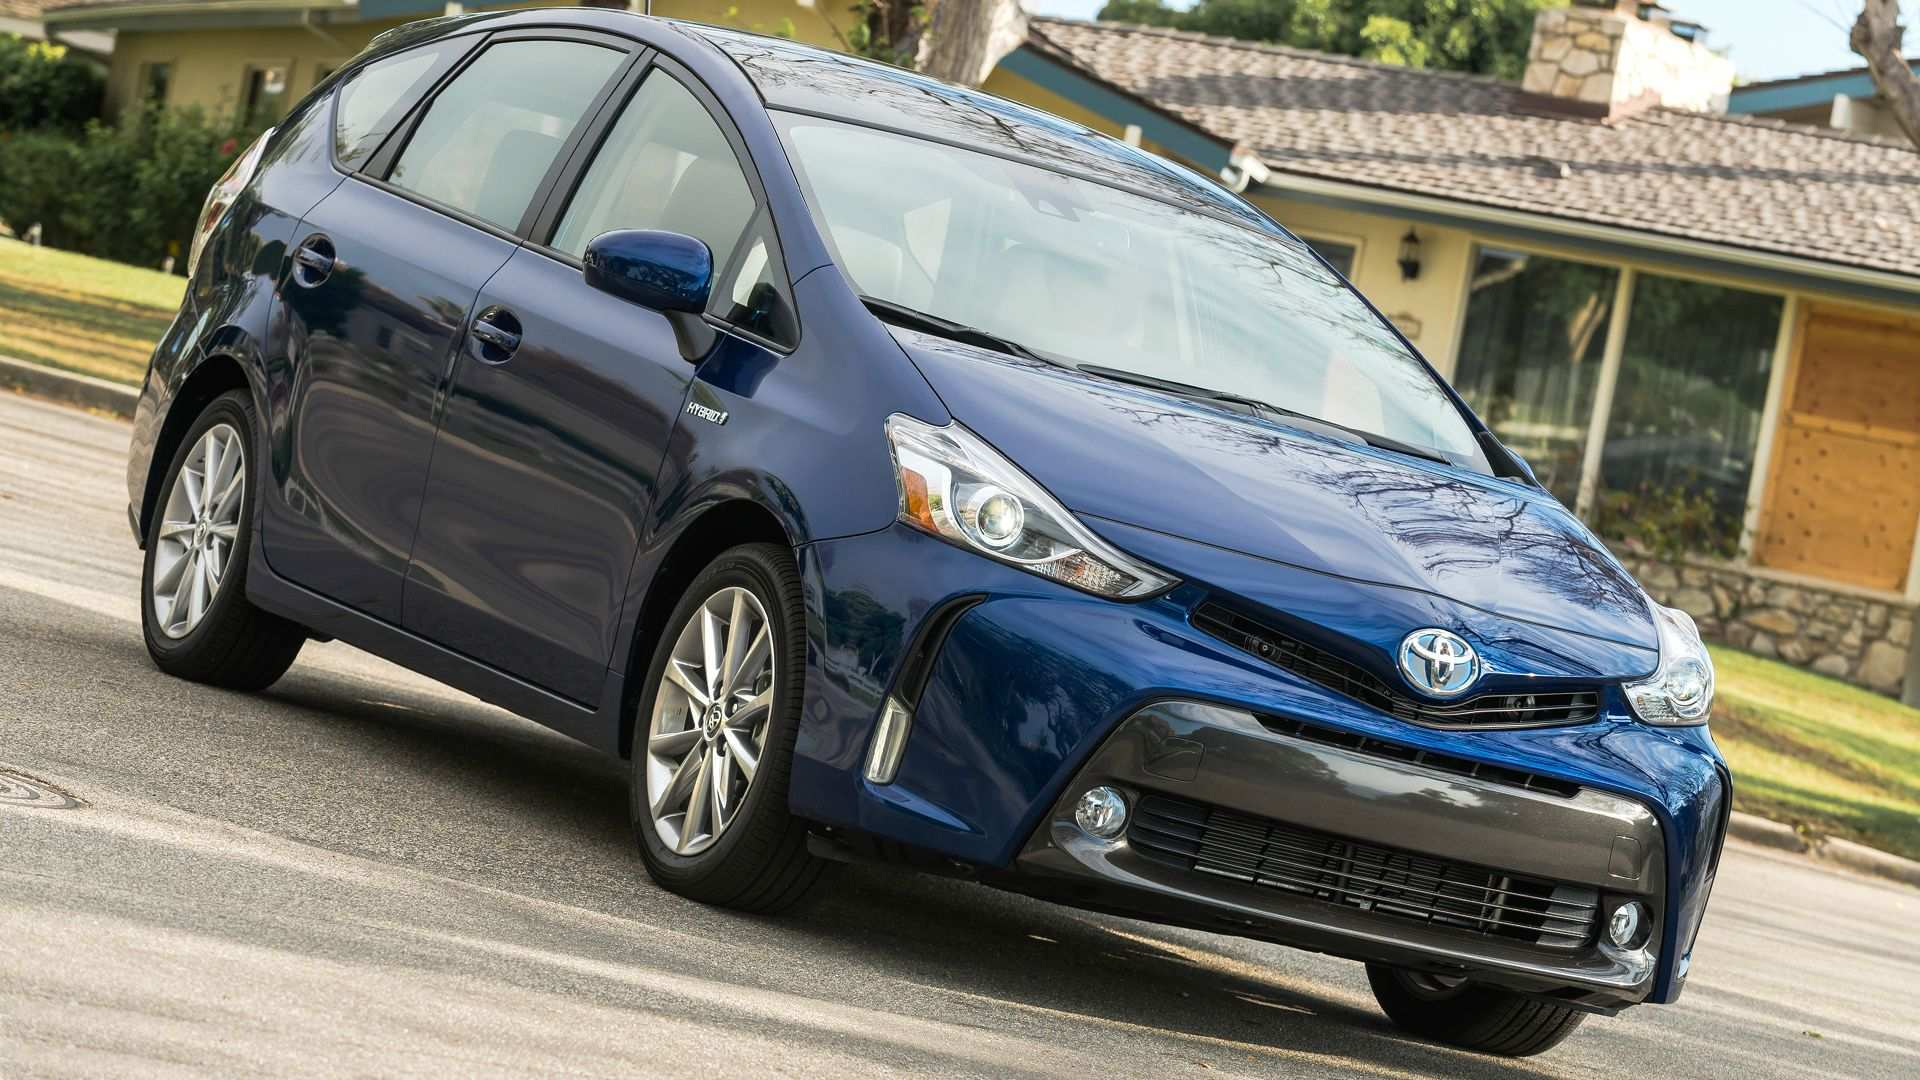 38 All New Toyota 2019 Release Date Prices